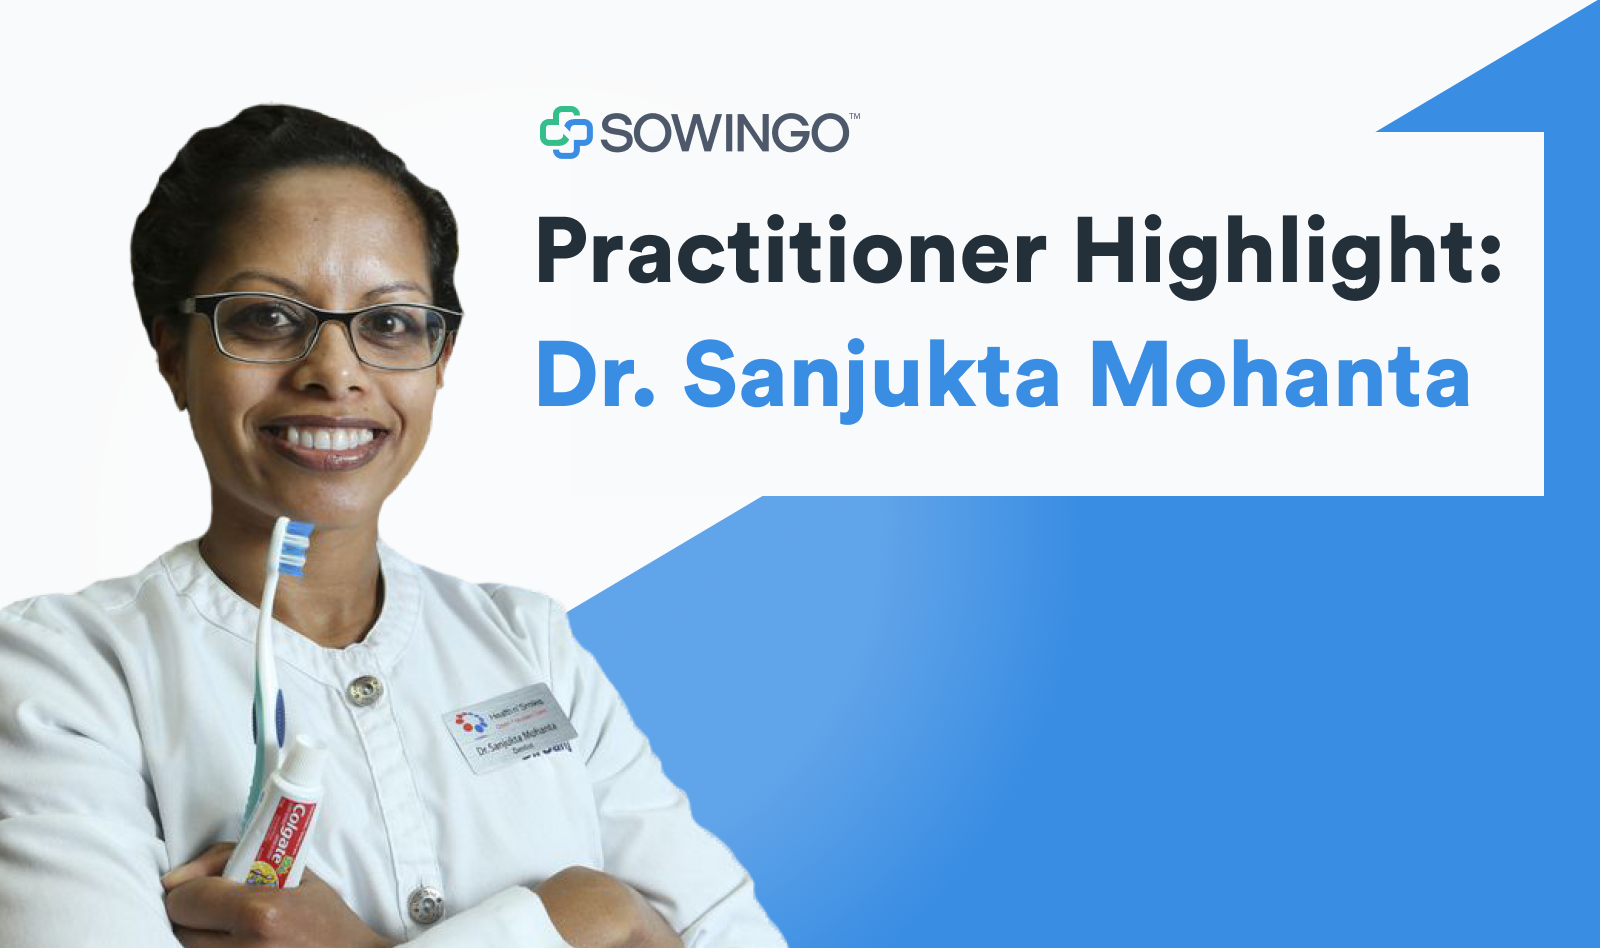 Practitioner Highlight: Dr. Sanjukta Mohanta